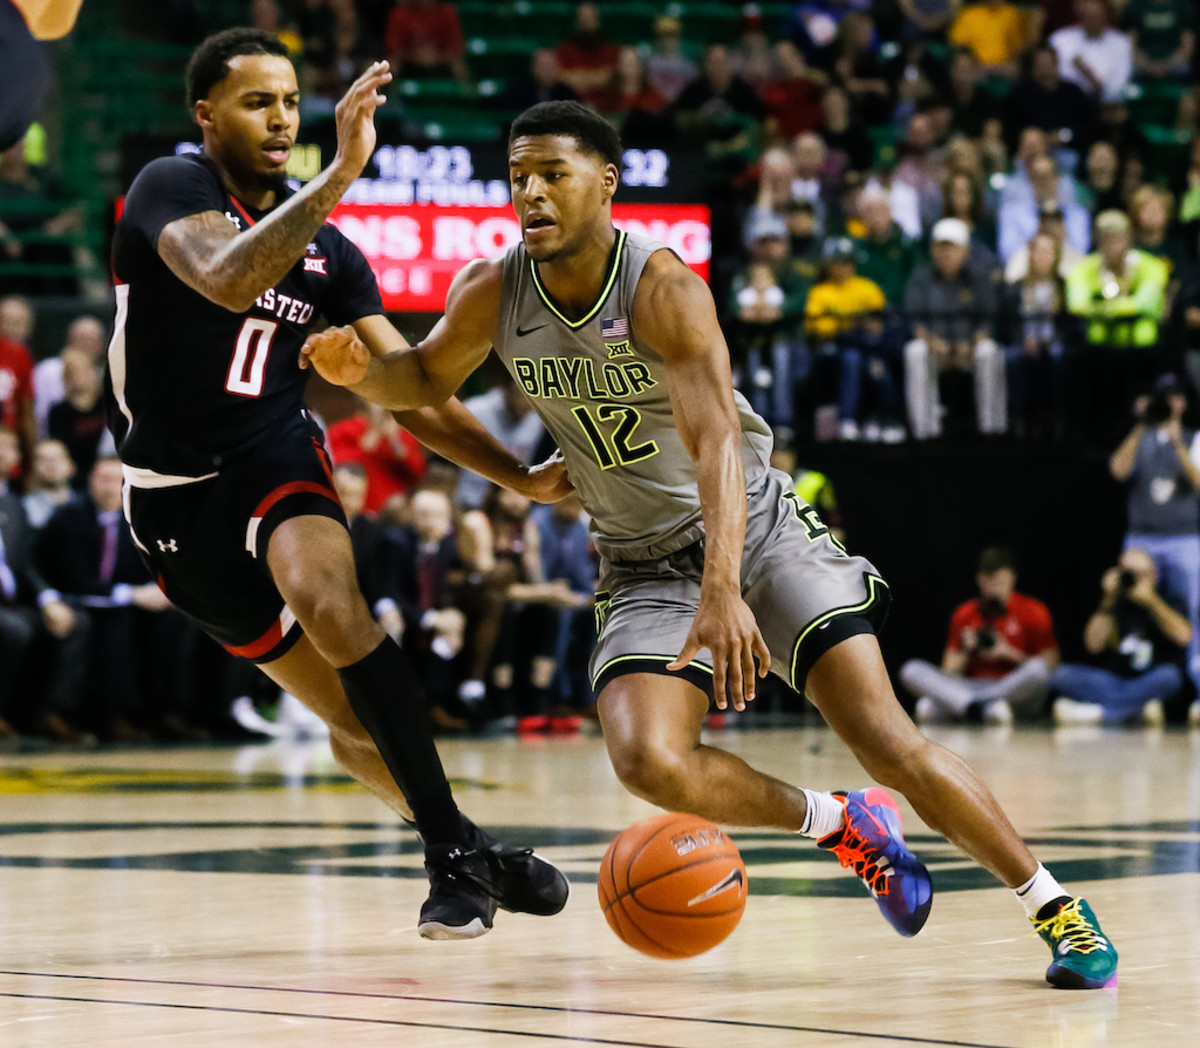 2020-21 College Basketball Betting Preview: Odds, Favorites, Props, and Picks to Cut Down the Nets